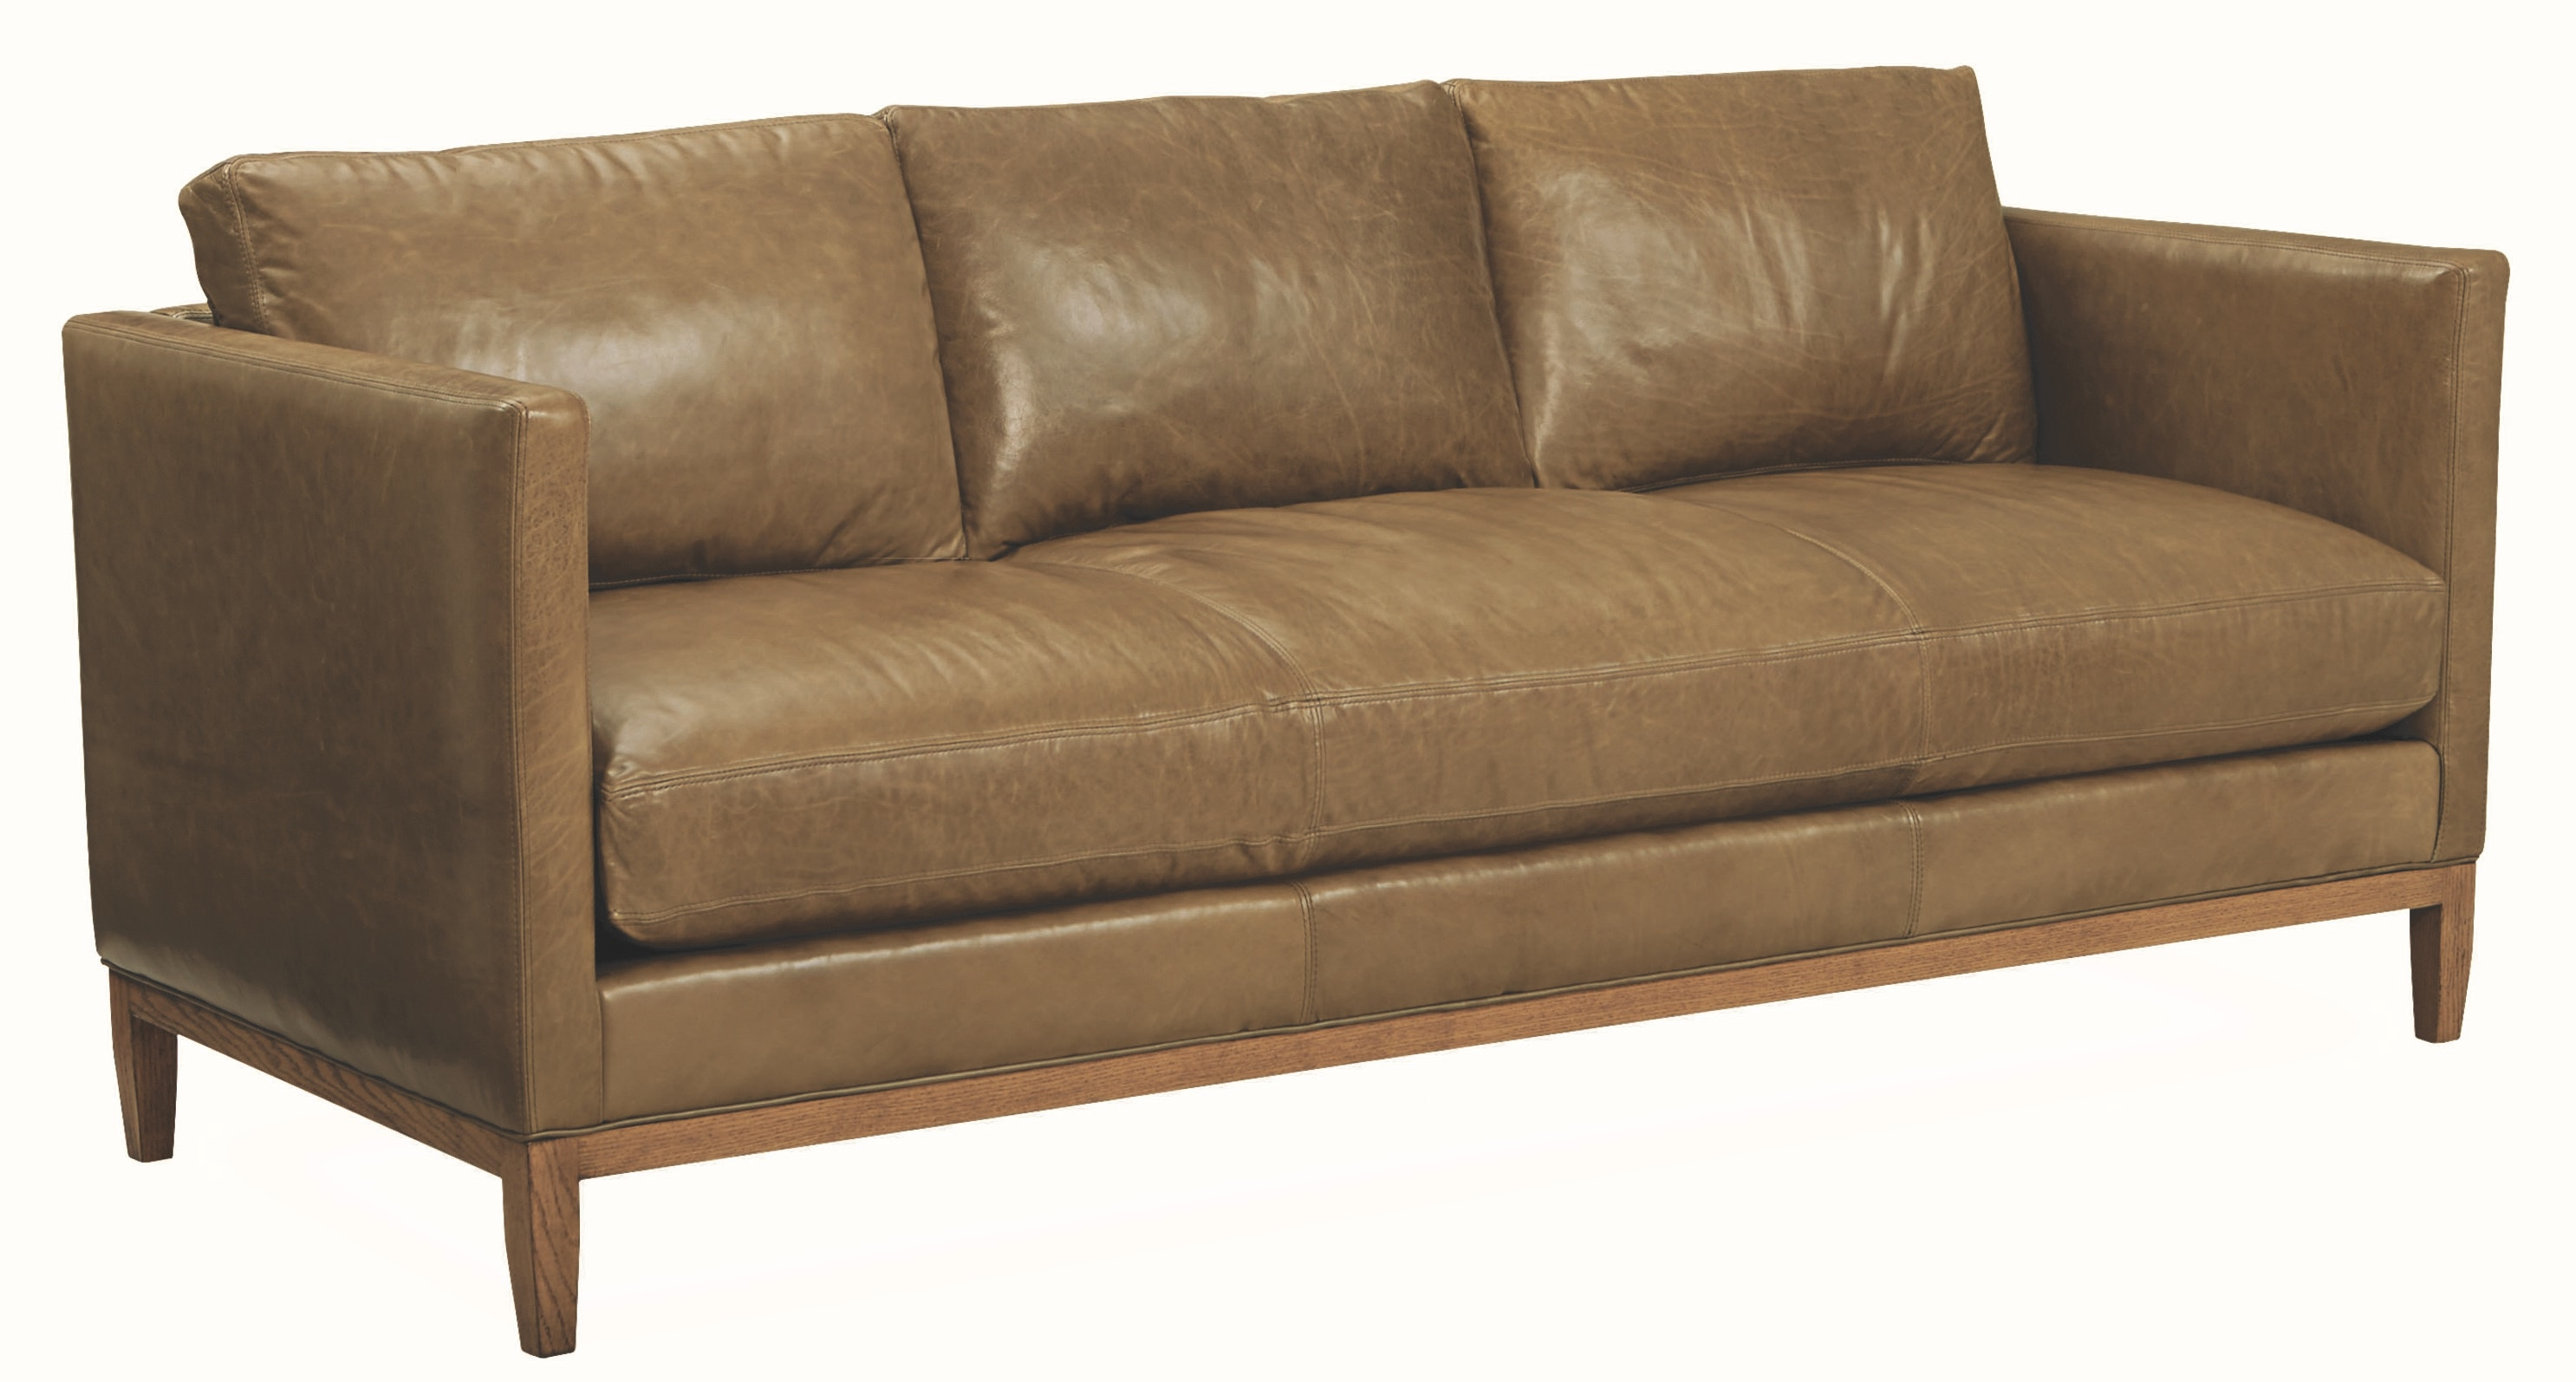 Lee Industries Leather Sofa L3583 03